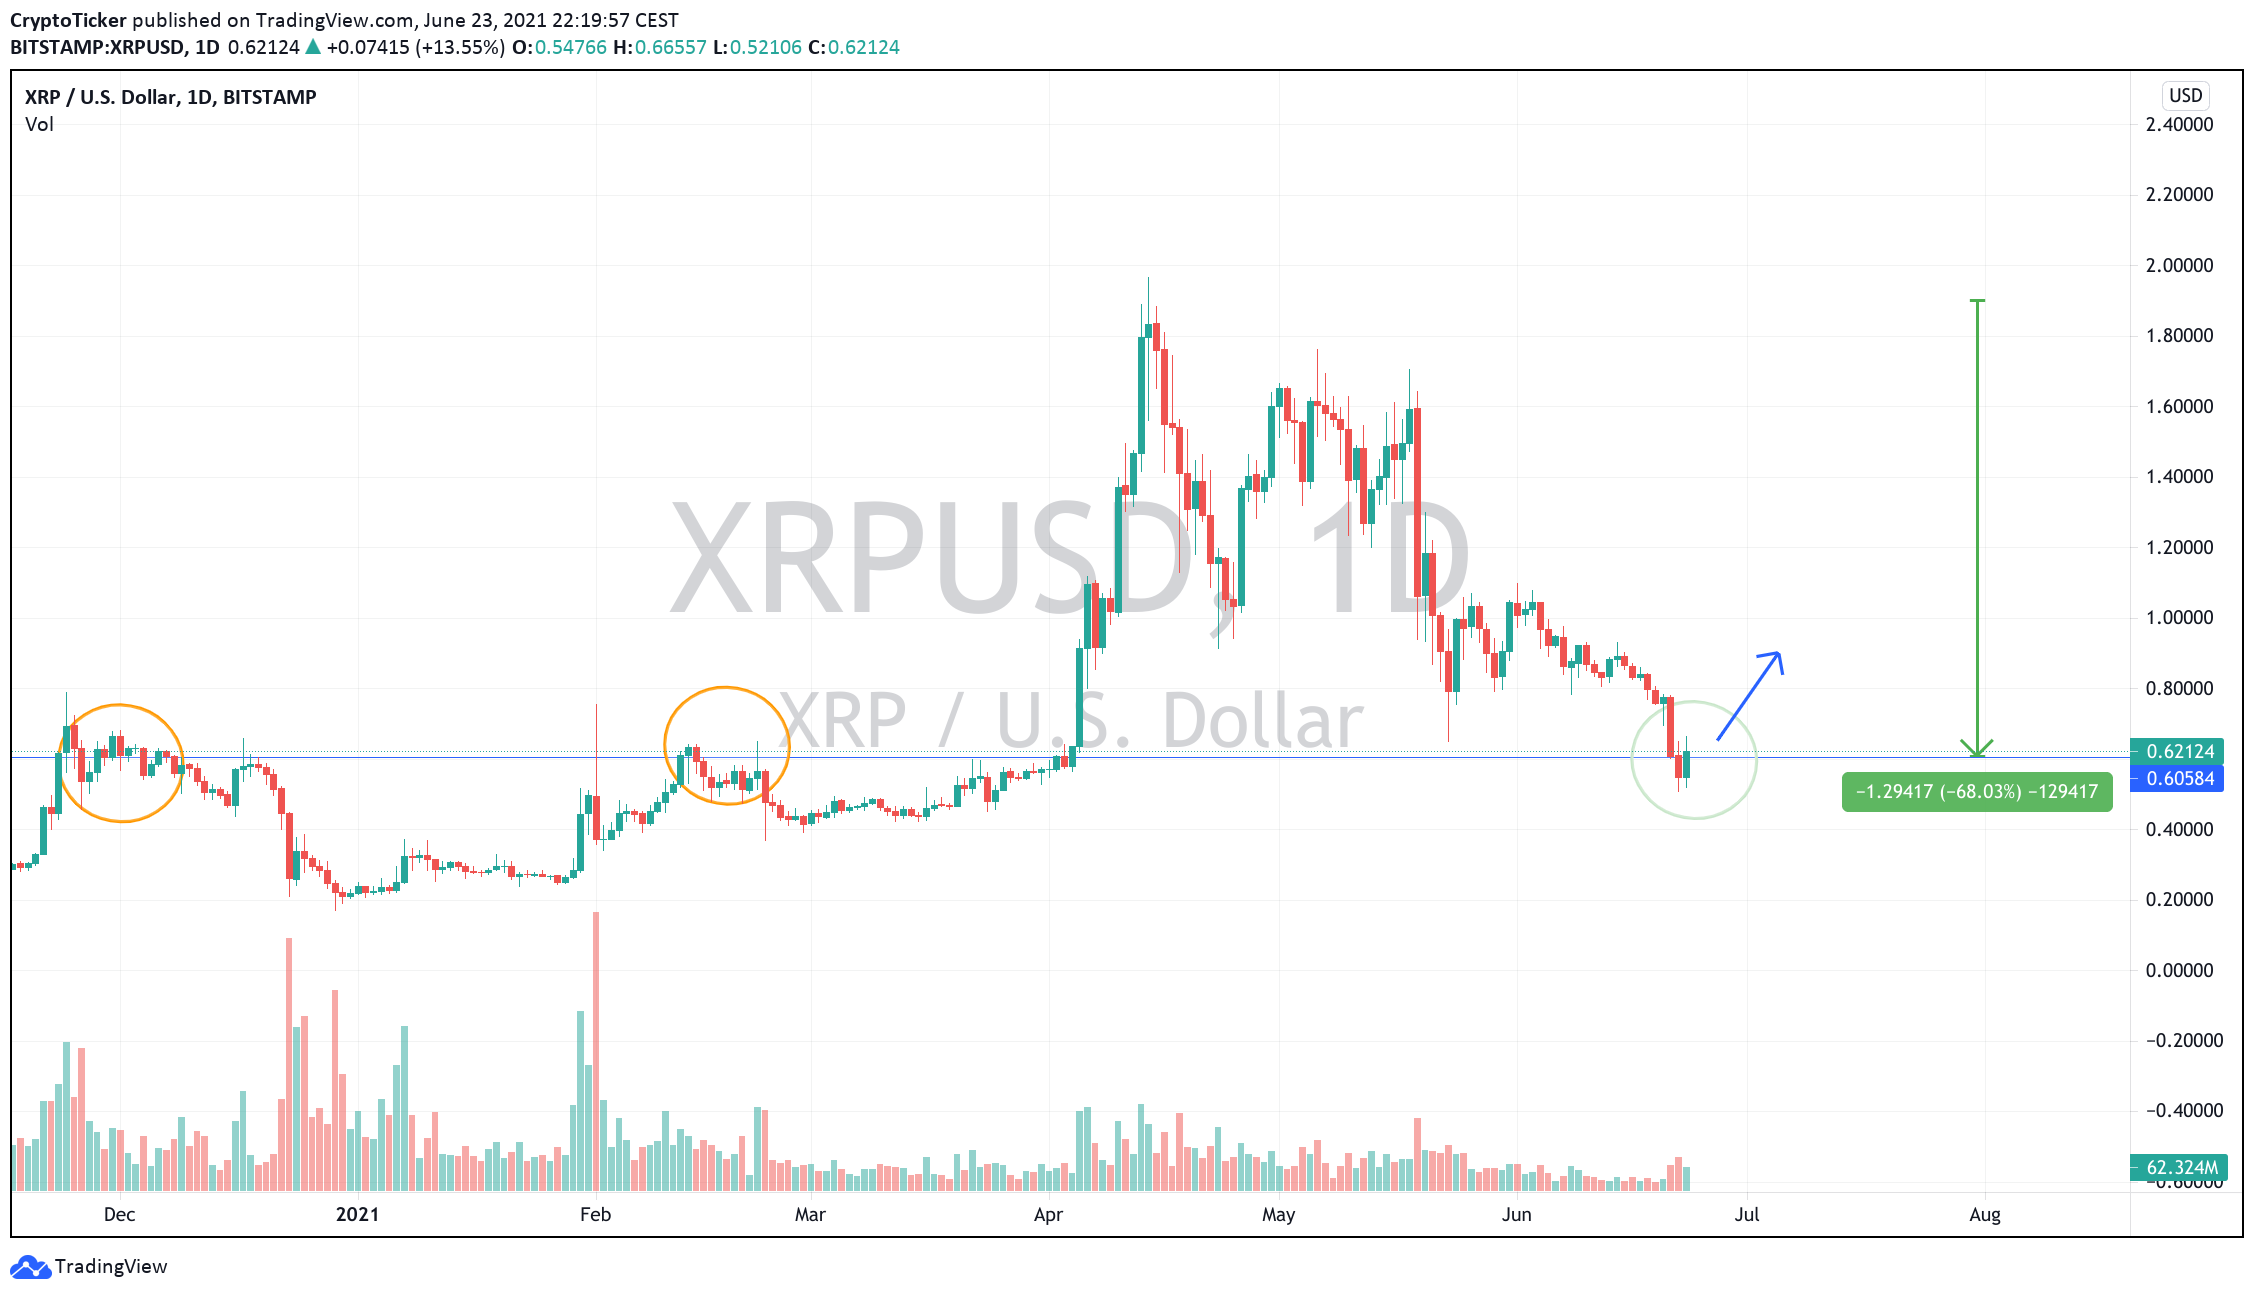 Ripple 1$: XRP/USD 1-day chart showing the potential Buy Zone for XRP